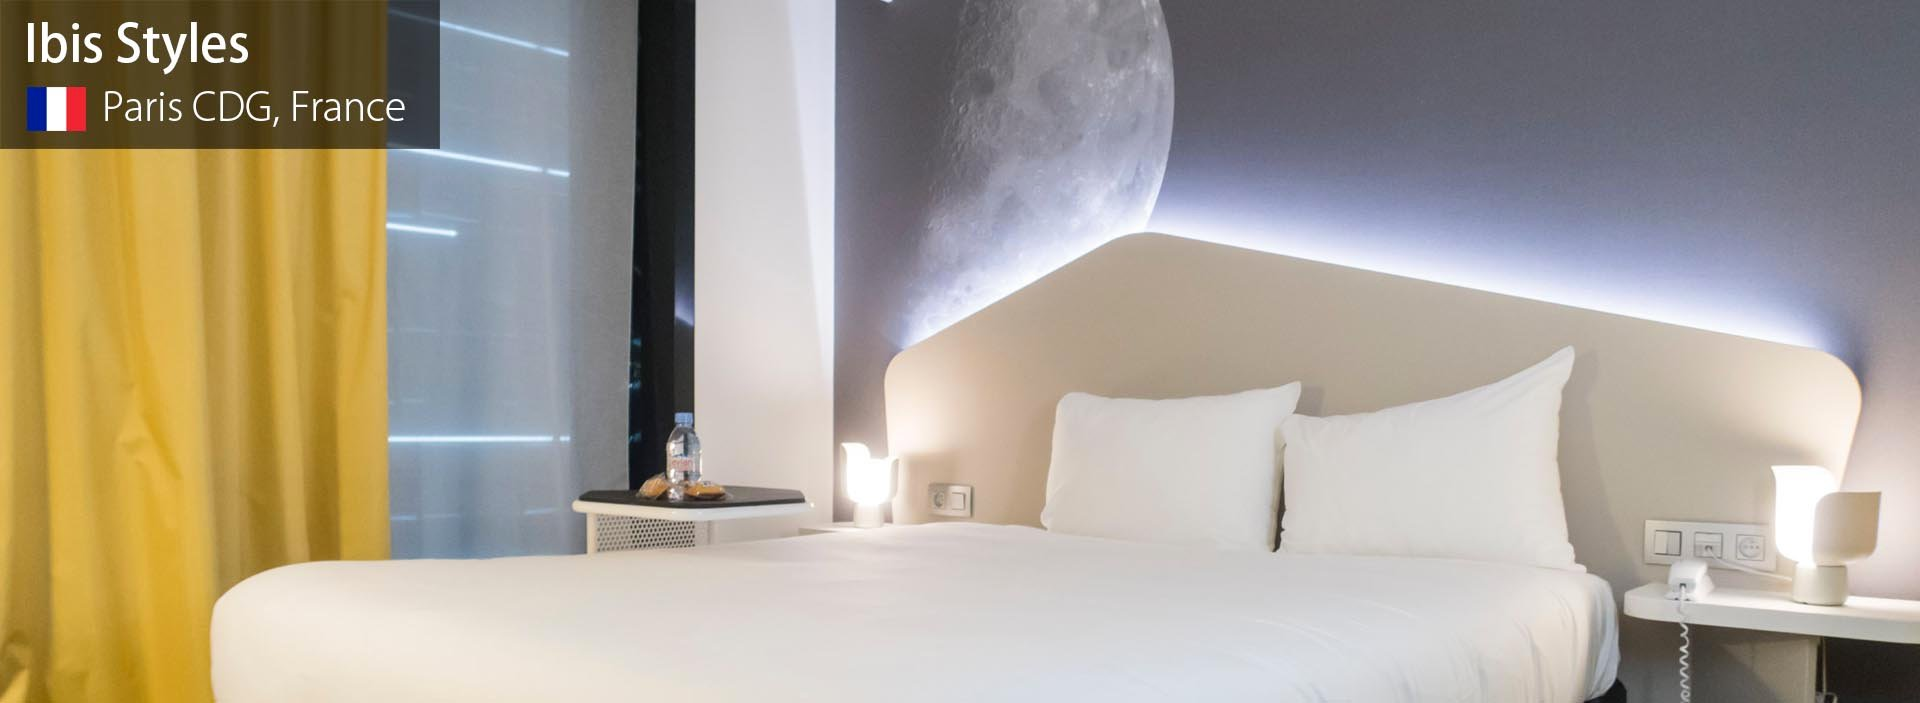 Airport Hotel Review: Ibis Styles Paris Charles de Gaulle Airport